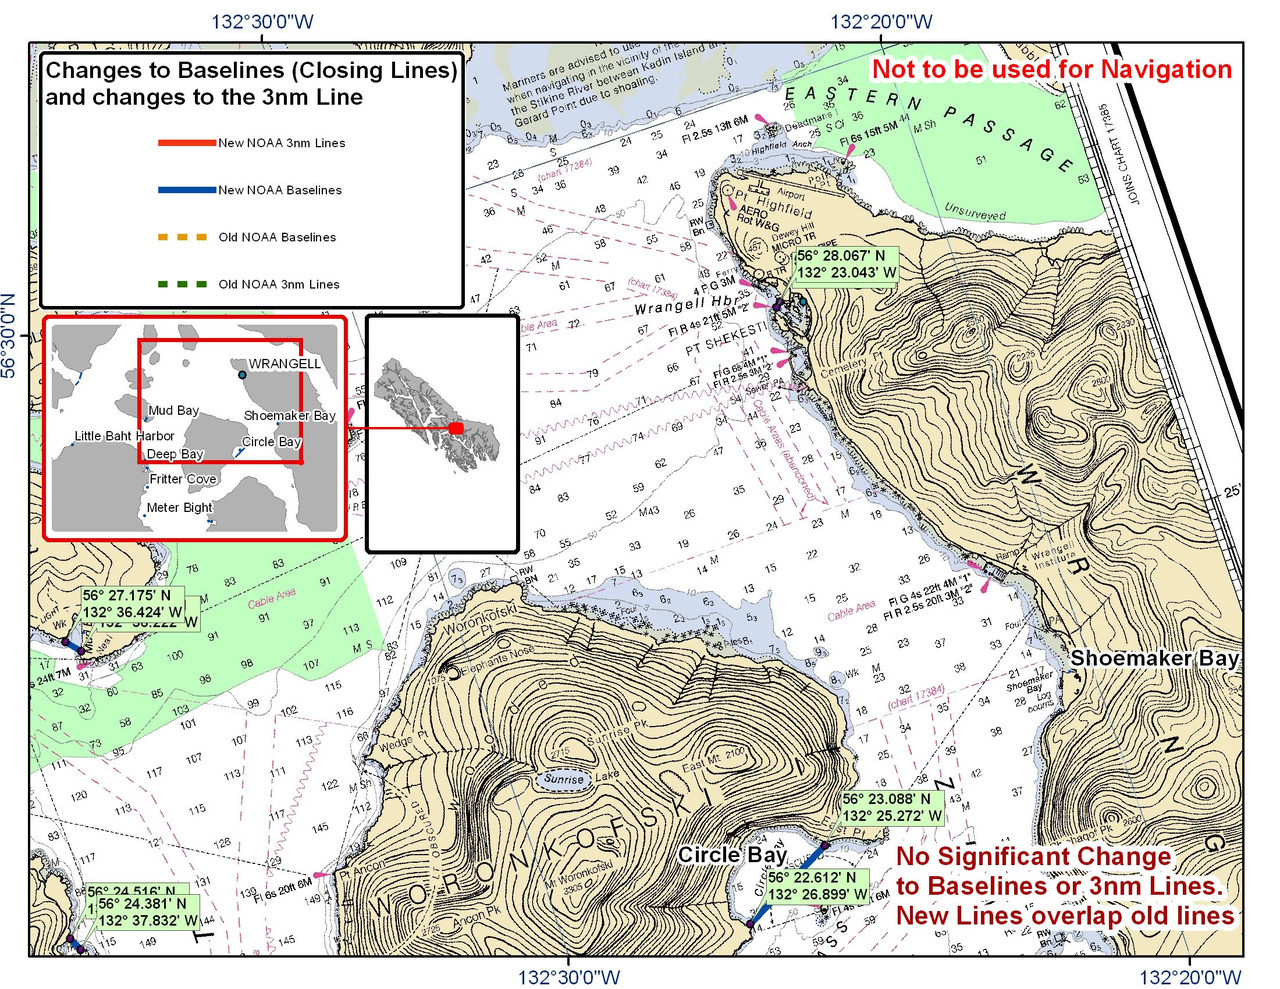 Chart for Circle Bay and the Surrounding Area (Wrangell)